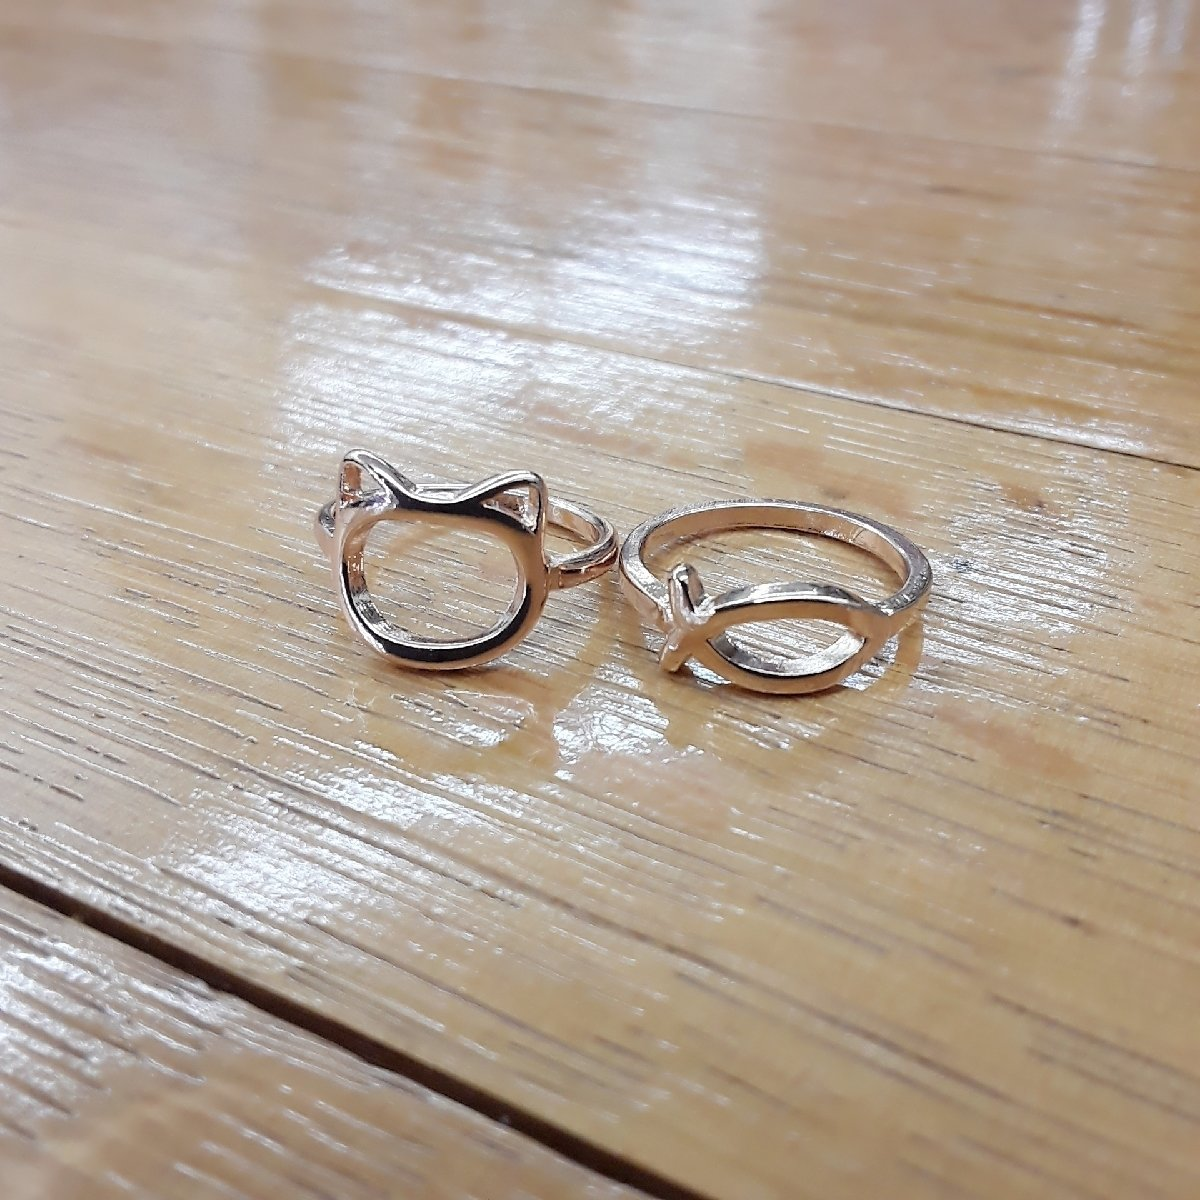 Cat & Fish Rings (set)